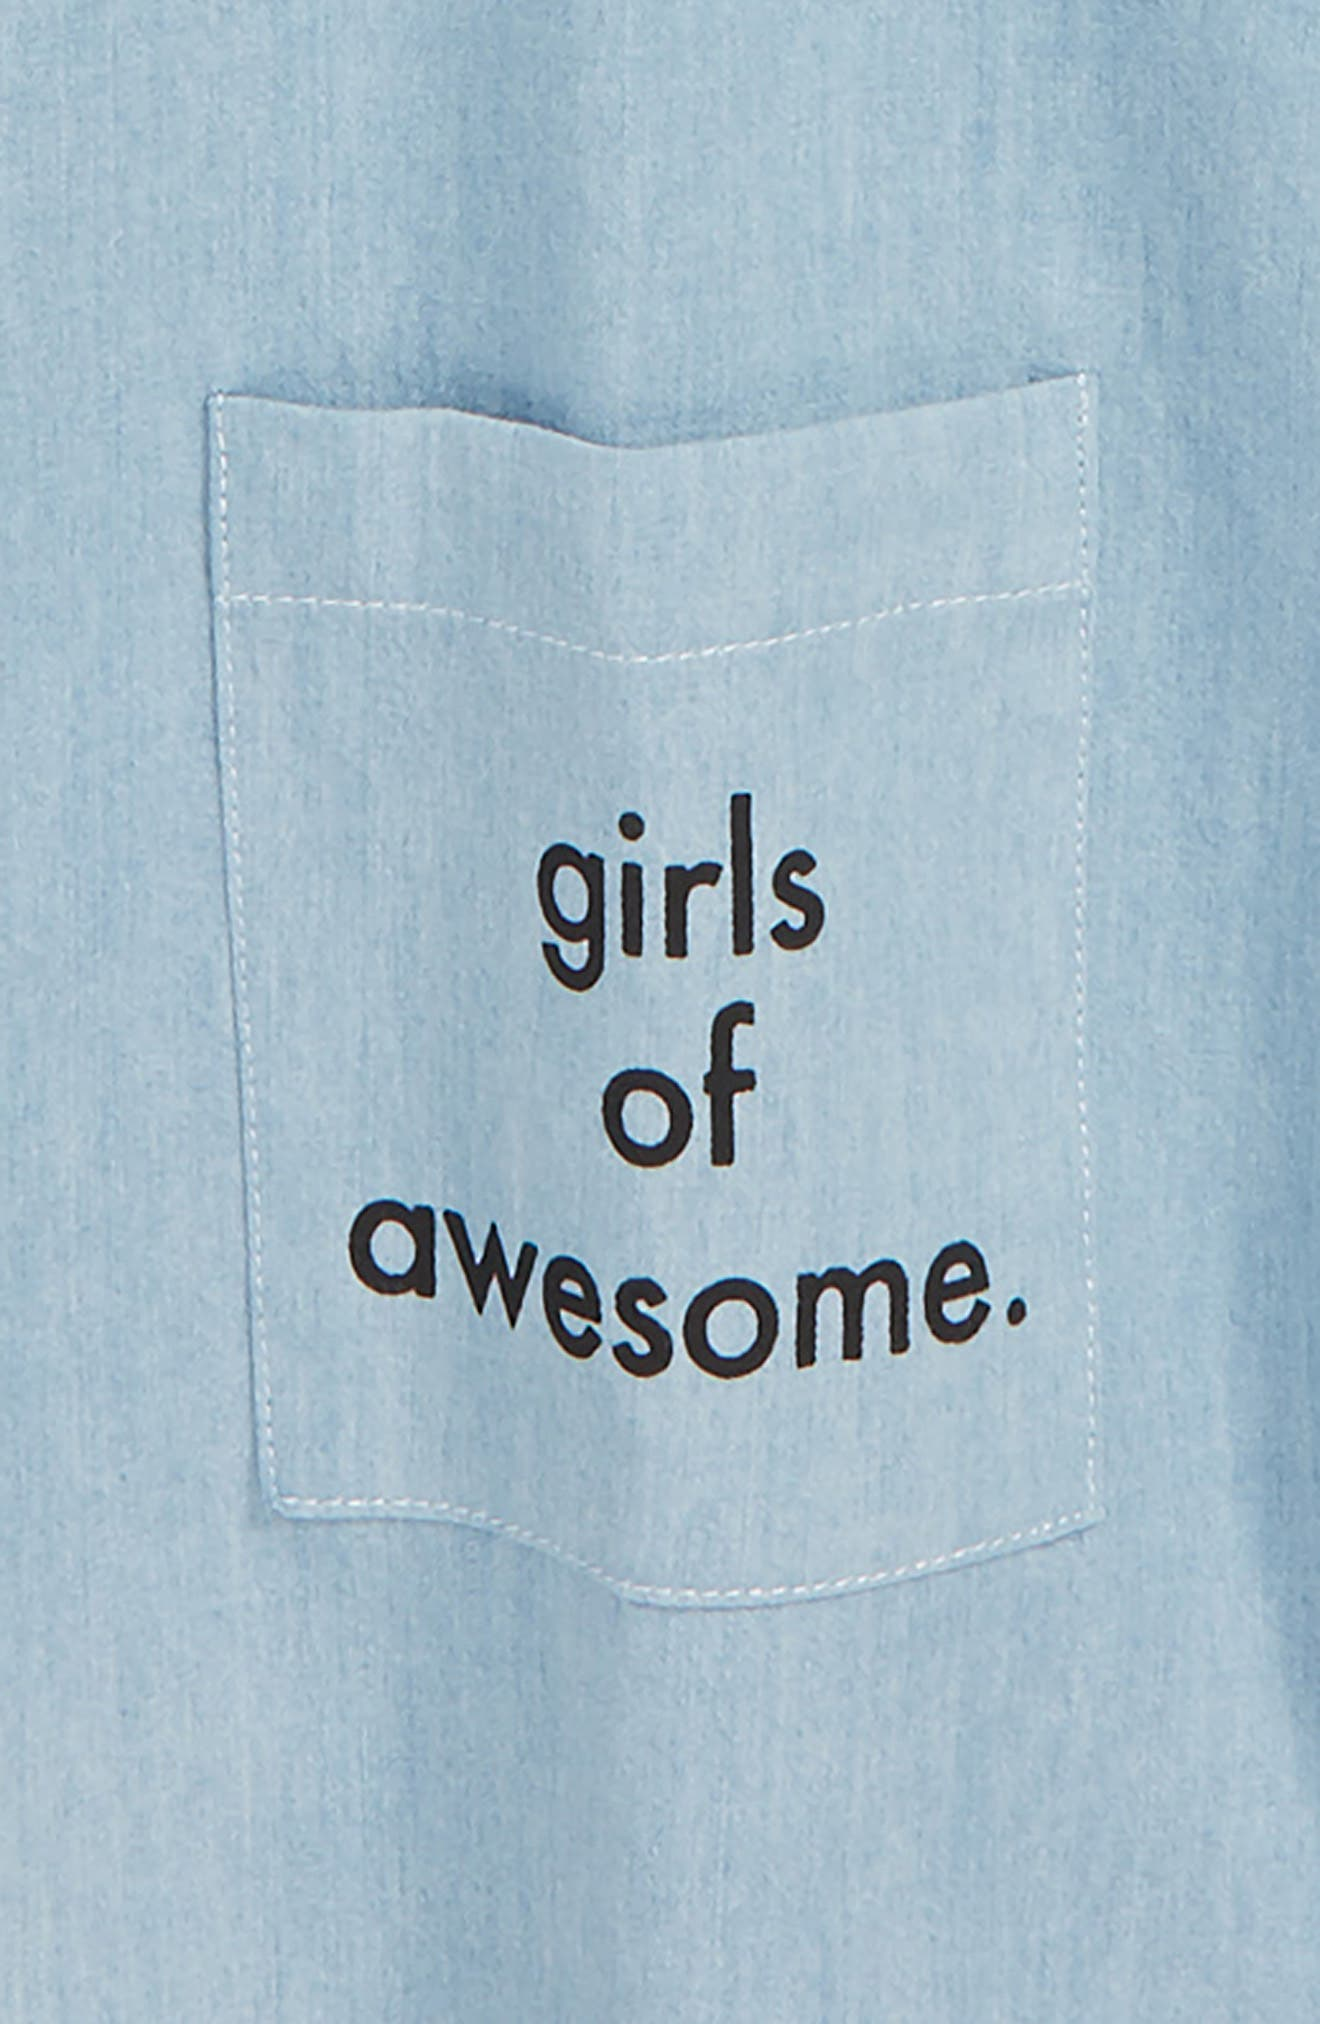 Girls of Awesome Tee & Dress Set,                             Alternate thumbnail 3, color,                             BLUE / CHAMBRAY